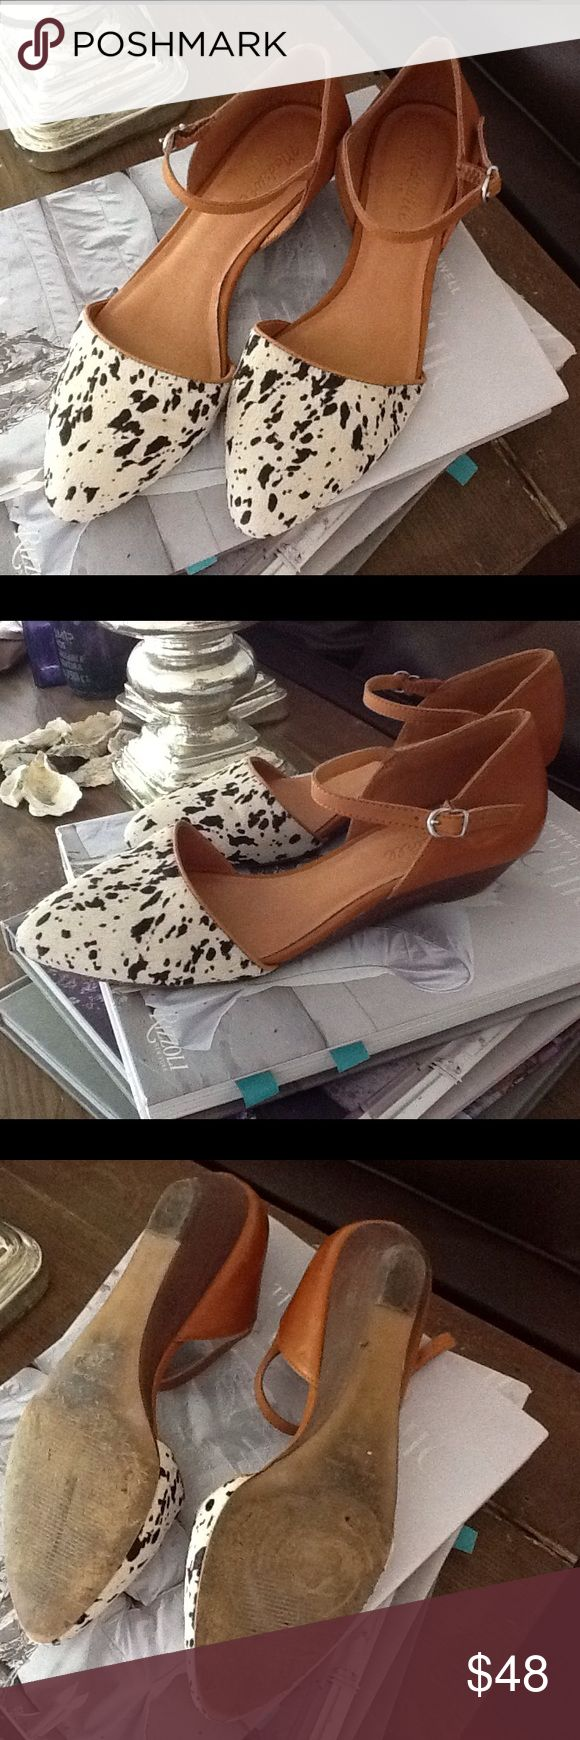 Madewell ankle strap shoe Honey brown with animal print toe. Super cute, and hard to find! Slight heel, see pics for example. Worn a few times, but overall good condition. Madewell Shoes